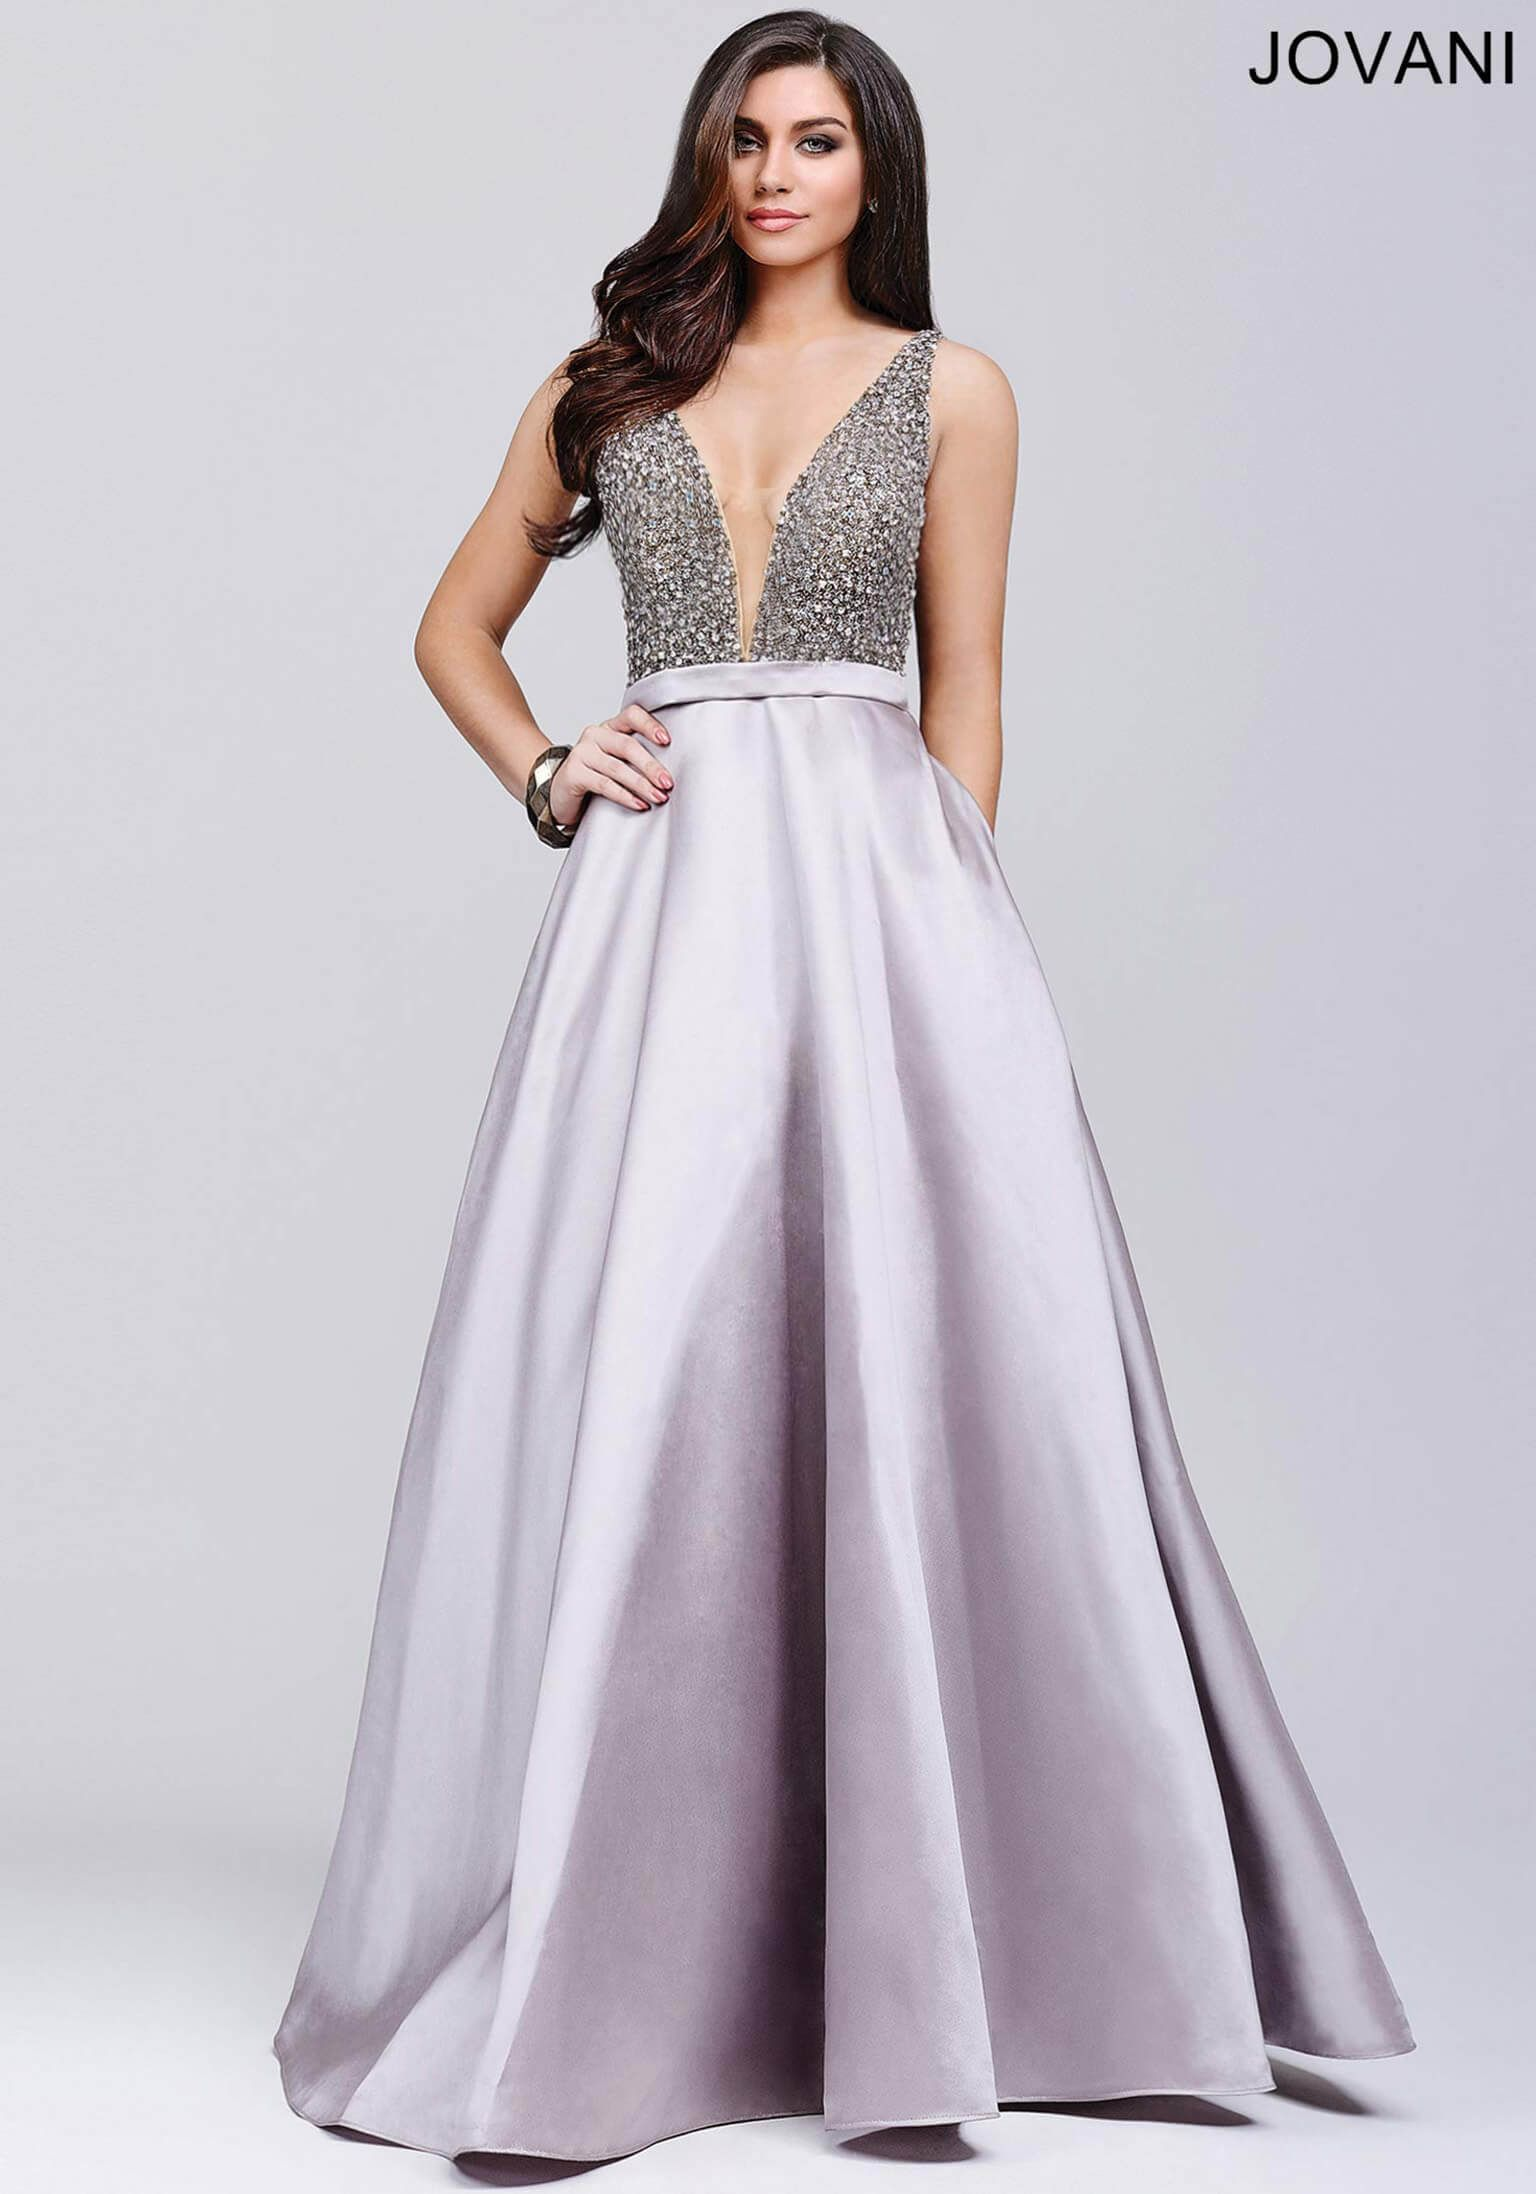 floor length ballgown with a plunging sheer mesh neckline